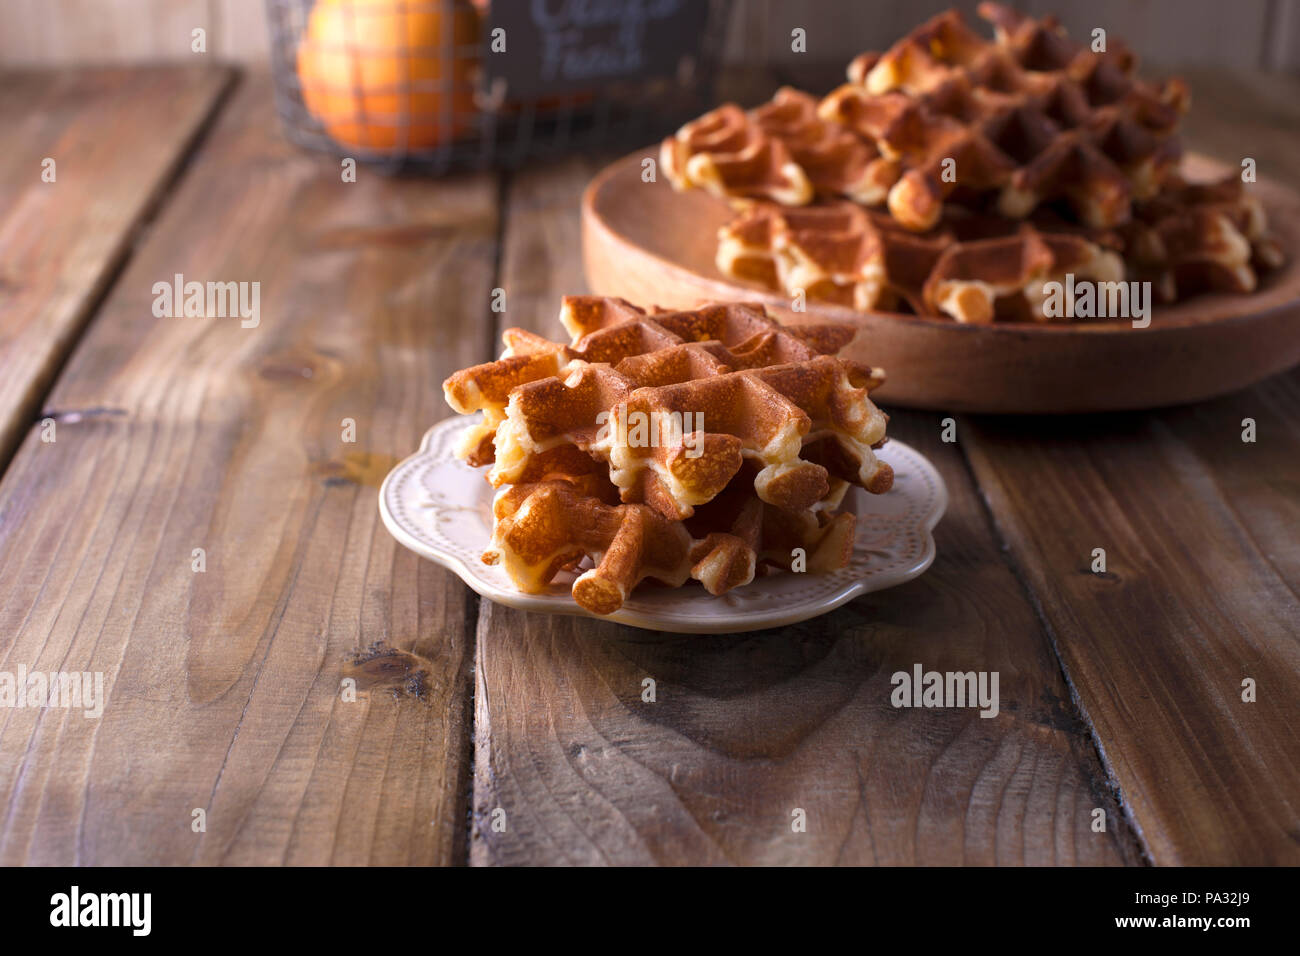 Sweet Belgian waffles for breakfast, on a wooden plate. On a brown wooden background - Stock Image